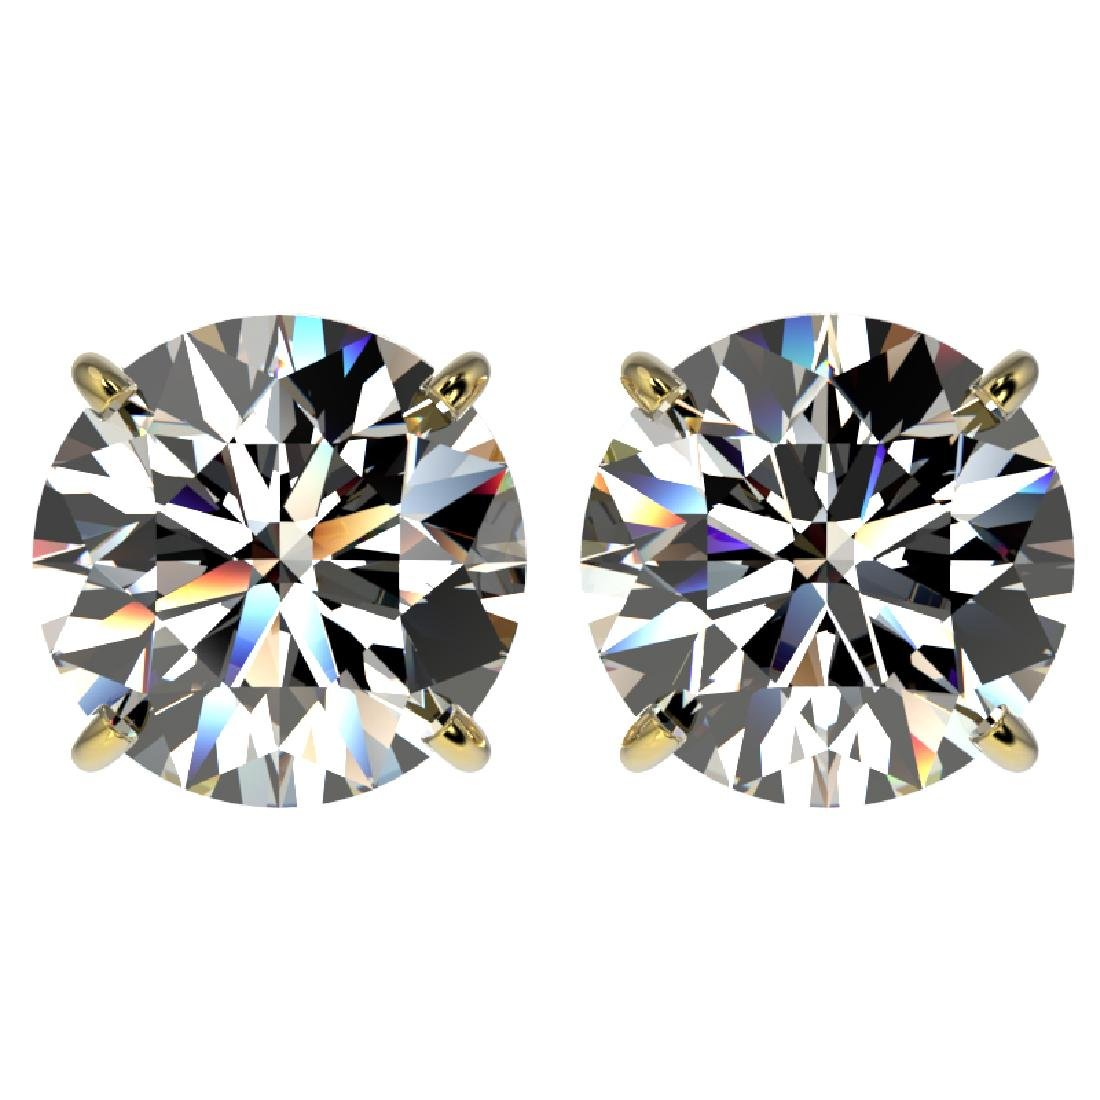 4 CTW Certified G-Si Quality Diamond Solitaire Stud